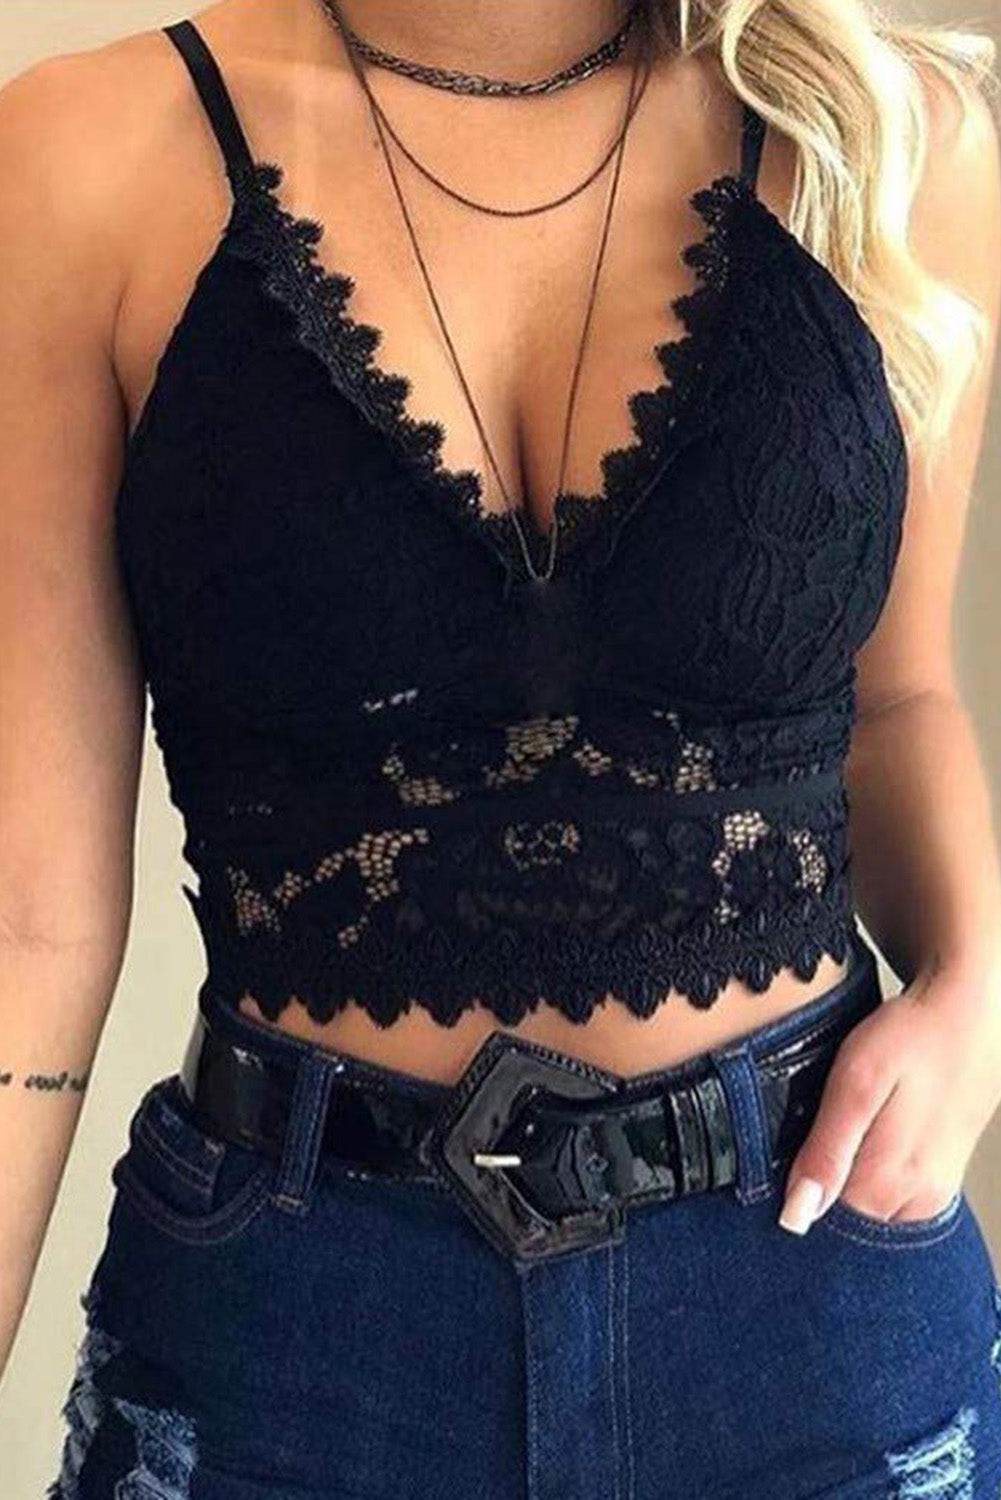 Black Deep V Lace Bralette Crop Top